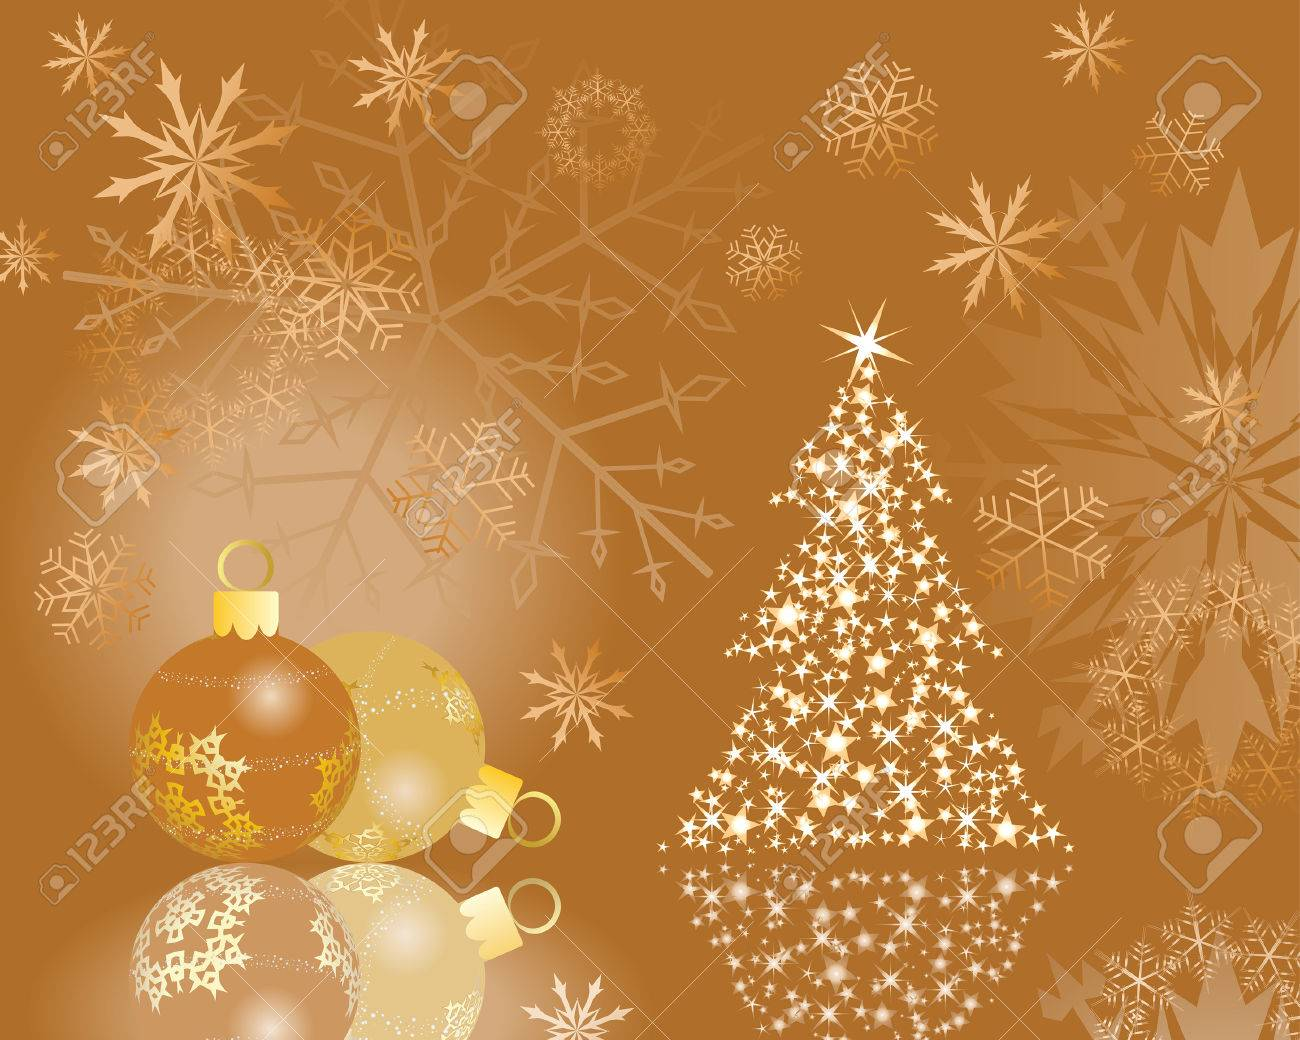 Beautiful vector christmas new year background for design use - Beautiful Vector Christmas New Year Background For Design Use Stock Vector 5657474